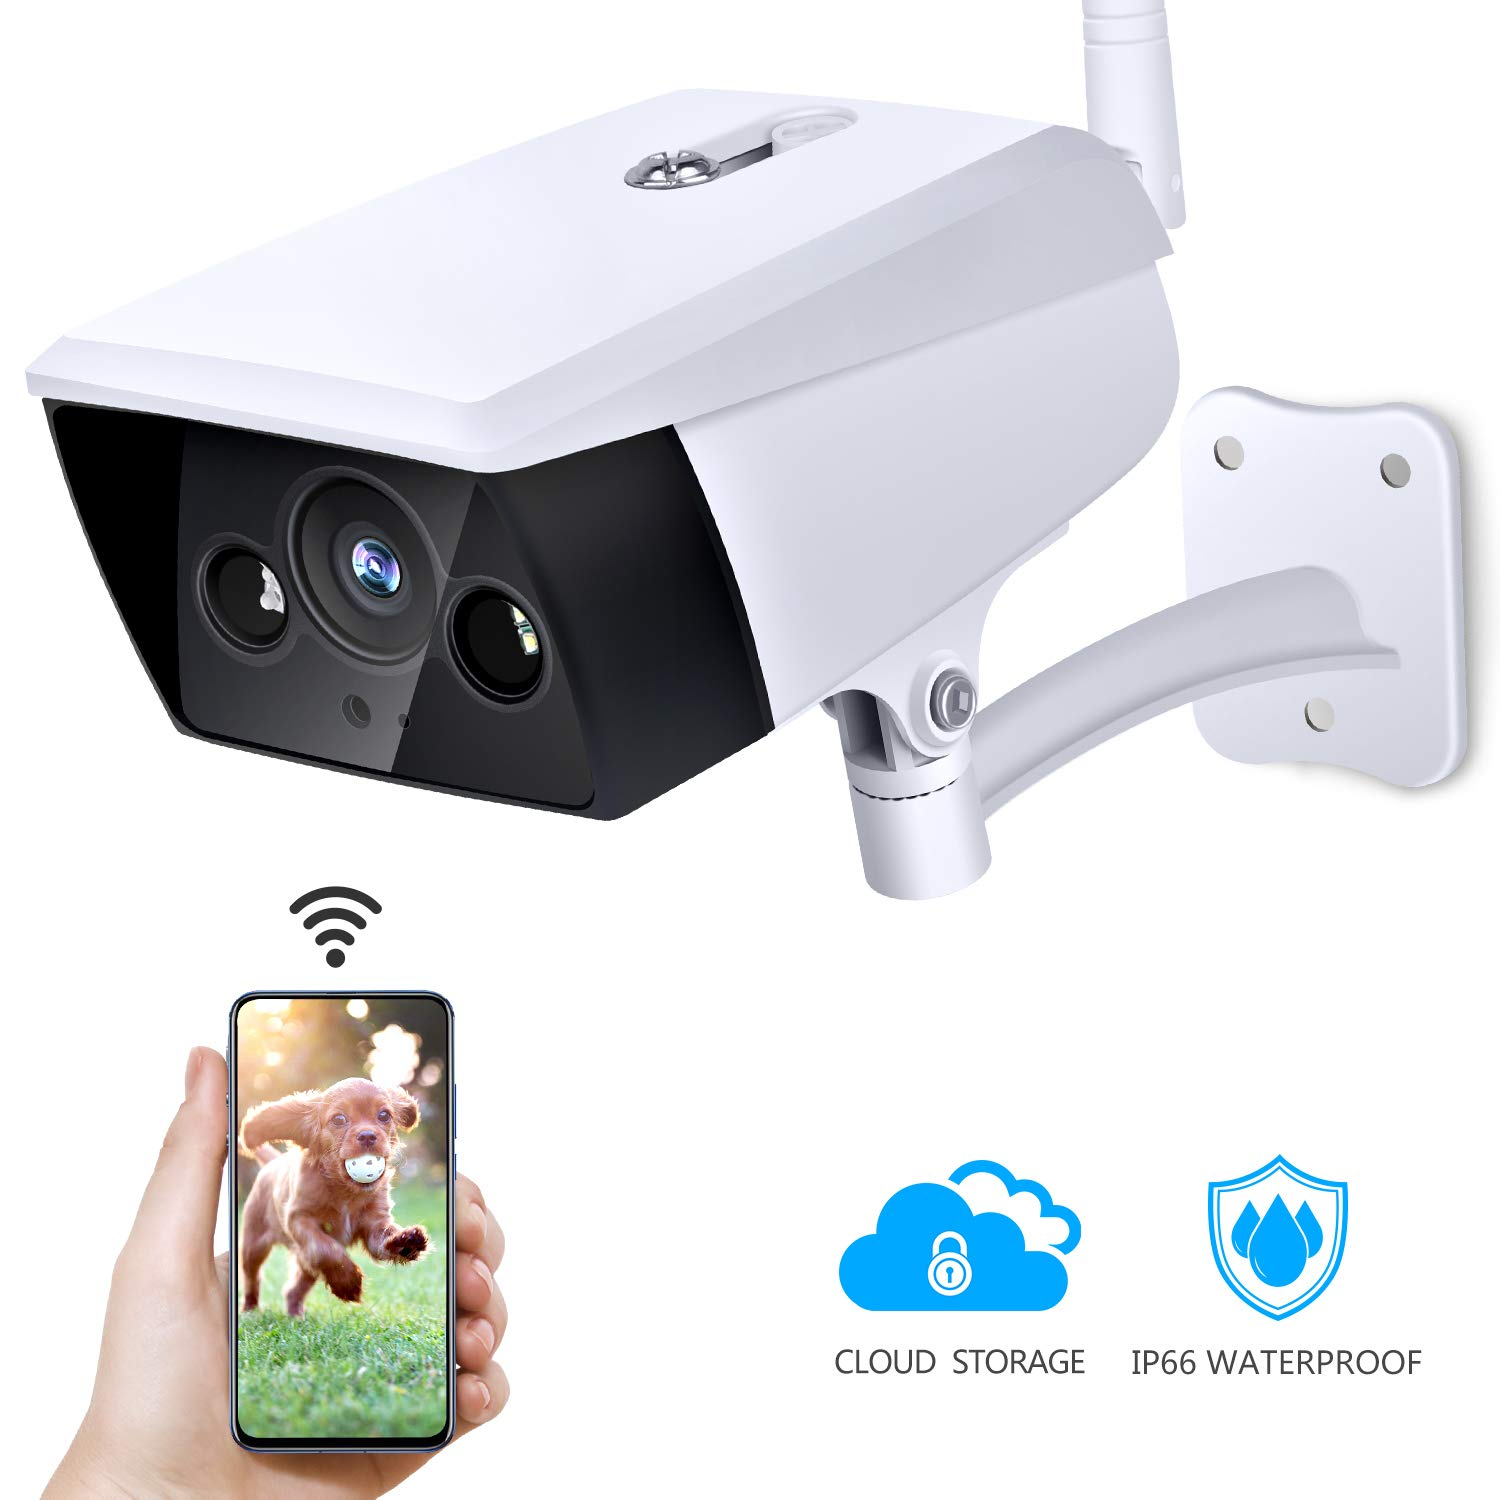 Outdoor Security Camera, KAMTRON Wireless IP Camera 2.4G WiFi 1080P IP66 Waterproof Night Vision Surveillance System with Motion Detection, Encryption Cloud Storage, Two-Way Audio - iOS, Android App by KAMTRON